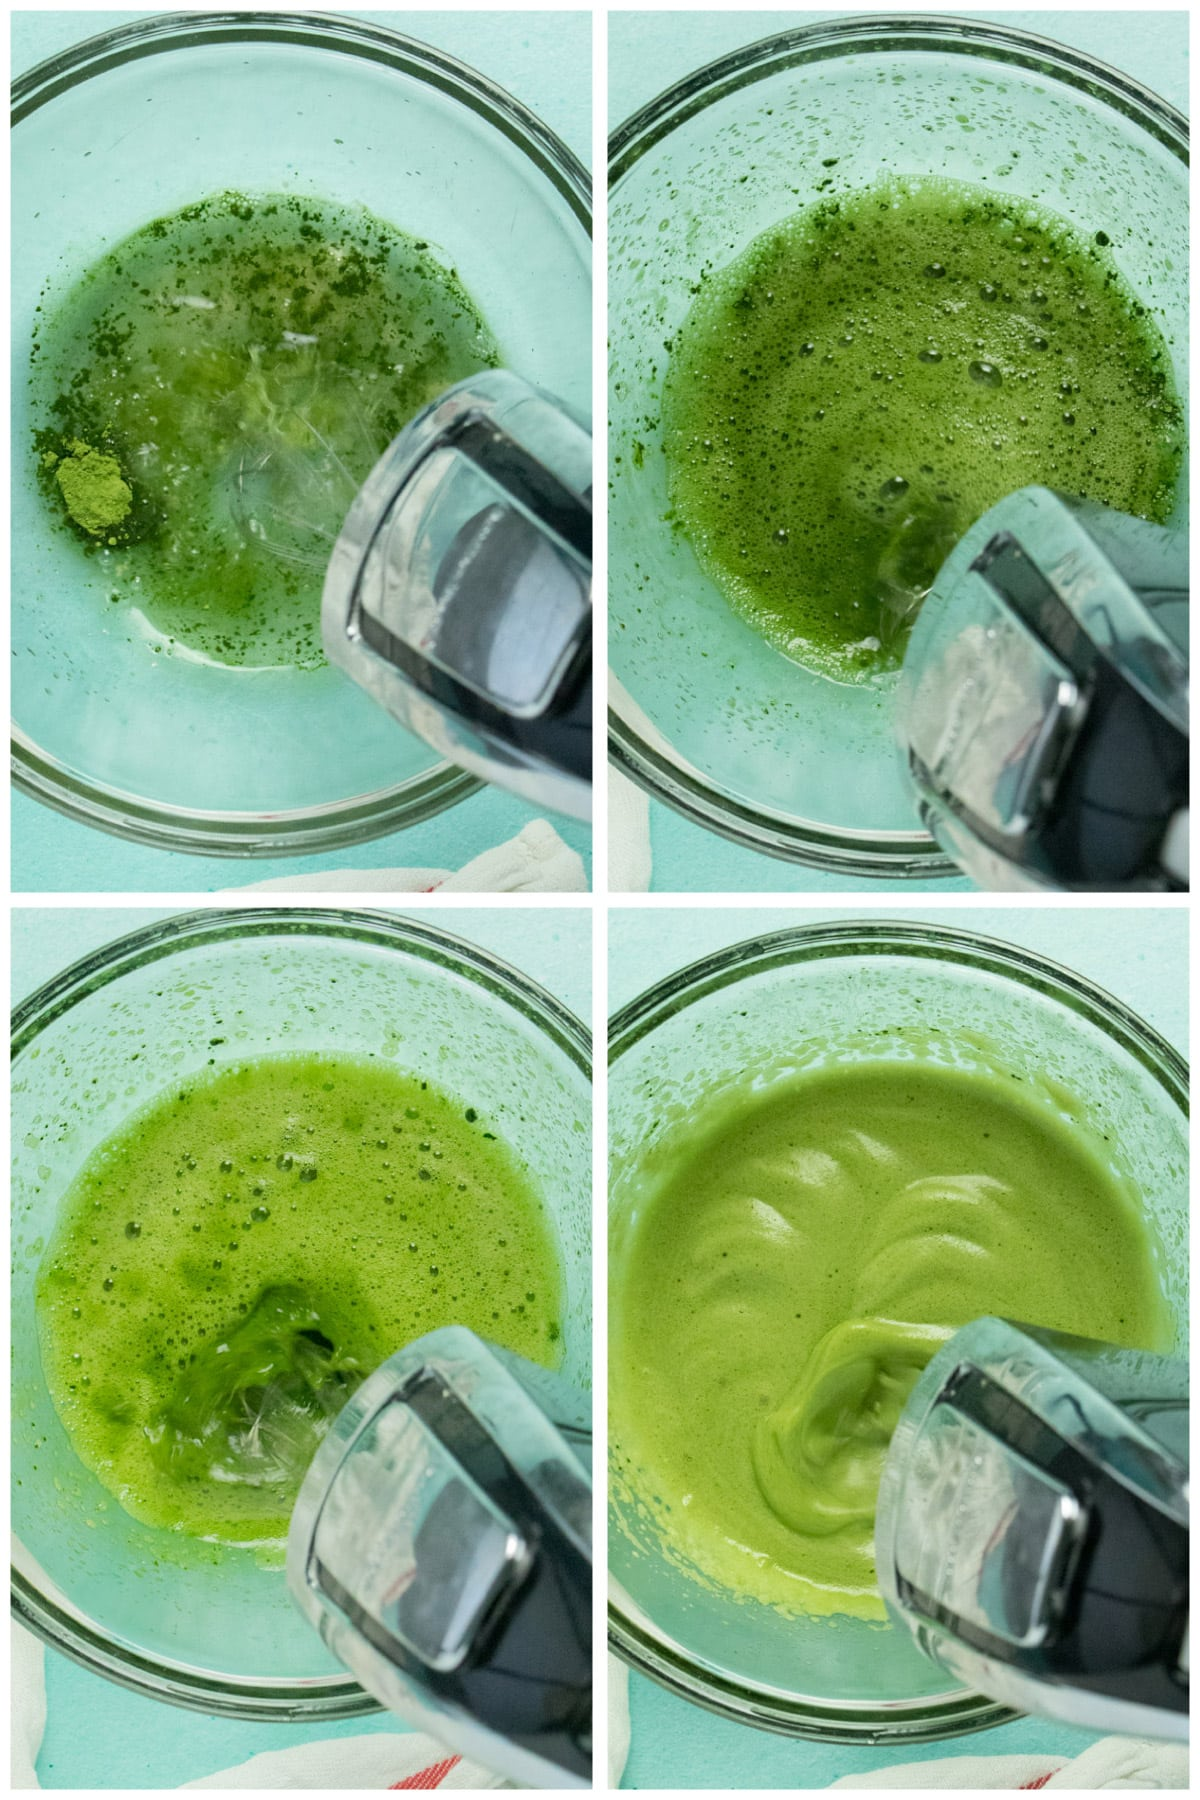 image collage of matcha whipped tea process, showing it going from frothy to foamy in 4 images